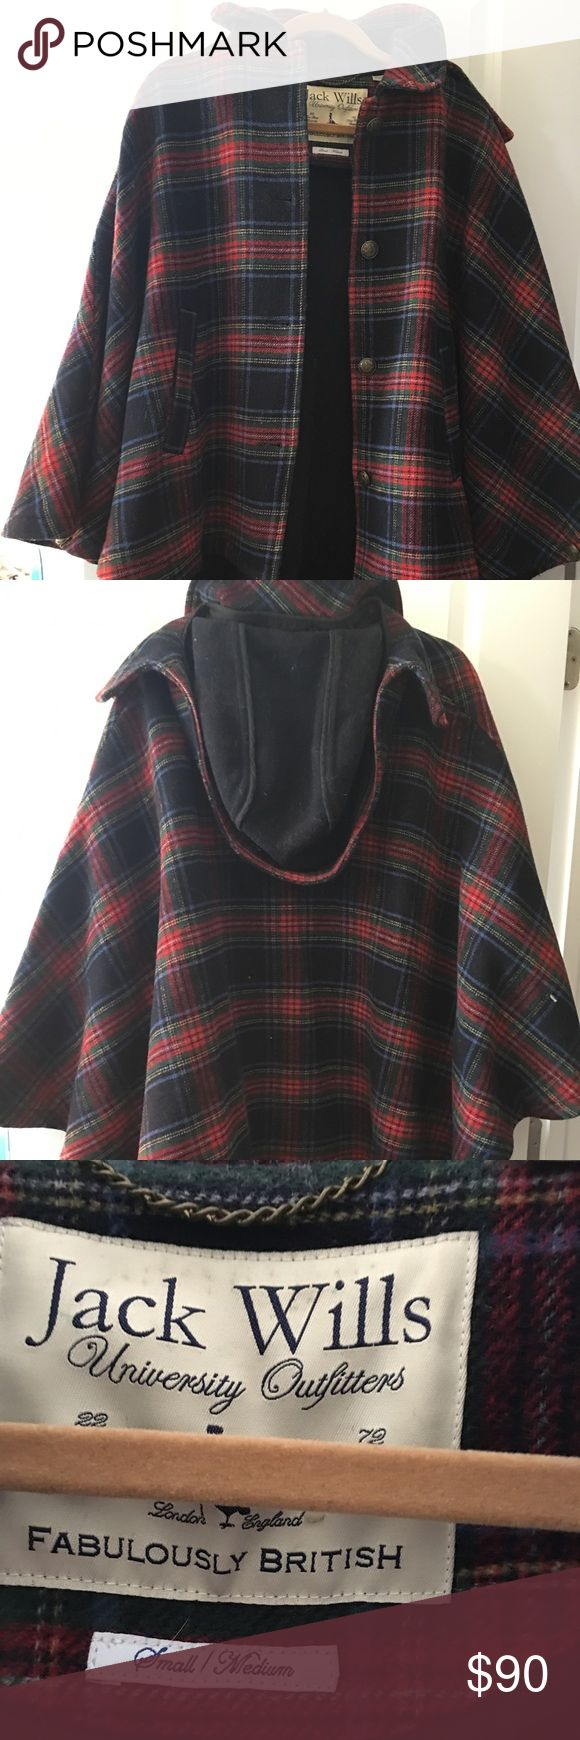 """Jack Wills Claverham Cape *MOVING SALE! Open to all offers!* Jack Wills Claverham Cape, size is small/medium as seen in pics. Barely worn. Front: 25"""" from collar to bottom. Back: 32"""" from base of collar to bottom. Hood is removable. BUNDLE & SAVE!! Buy 3 items from my closet, get a 15% discount (everything is already heavily discounted) 💁👗👚👖👠👜 Jack Wills Jackets & Coats Capes"""